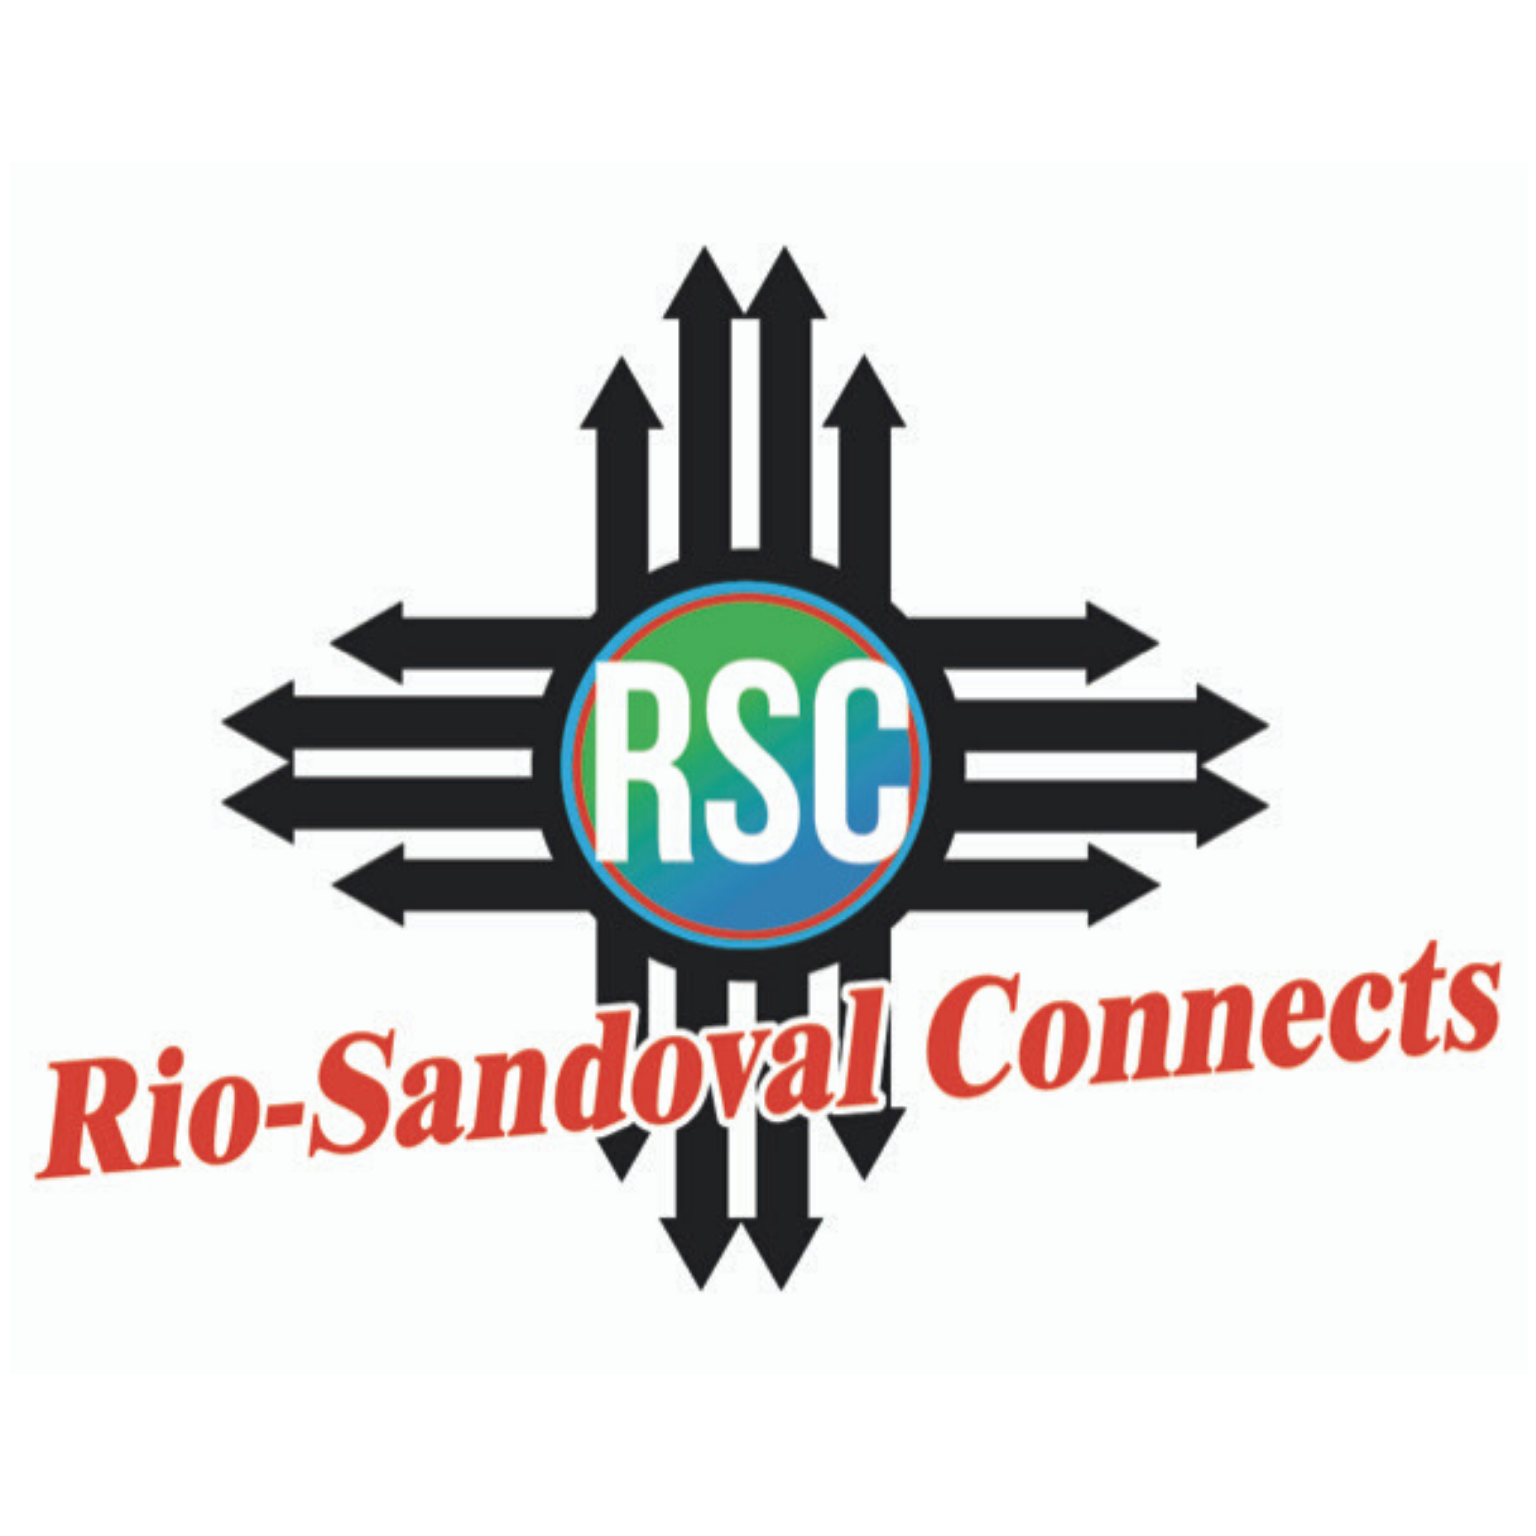 rio sandoval connects logo